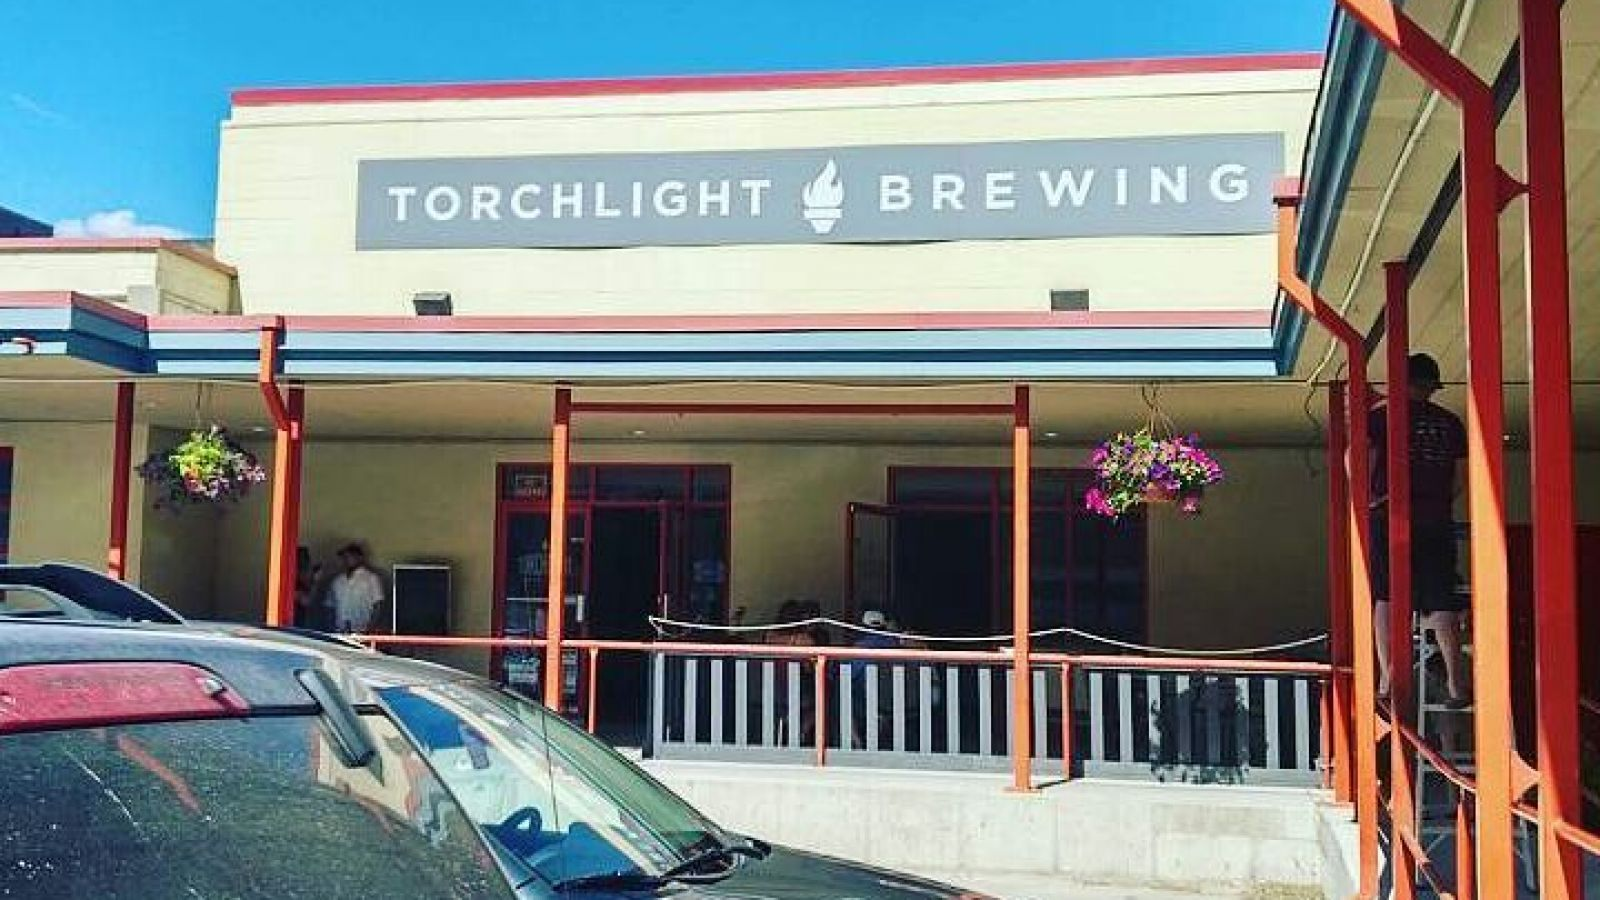 Torchlight Brewing Company.